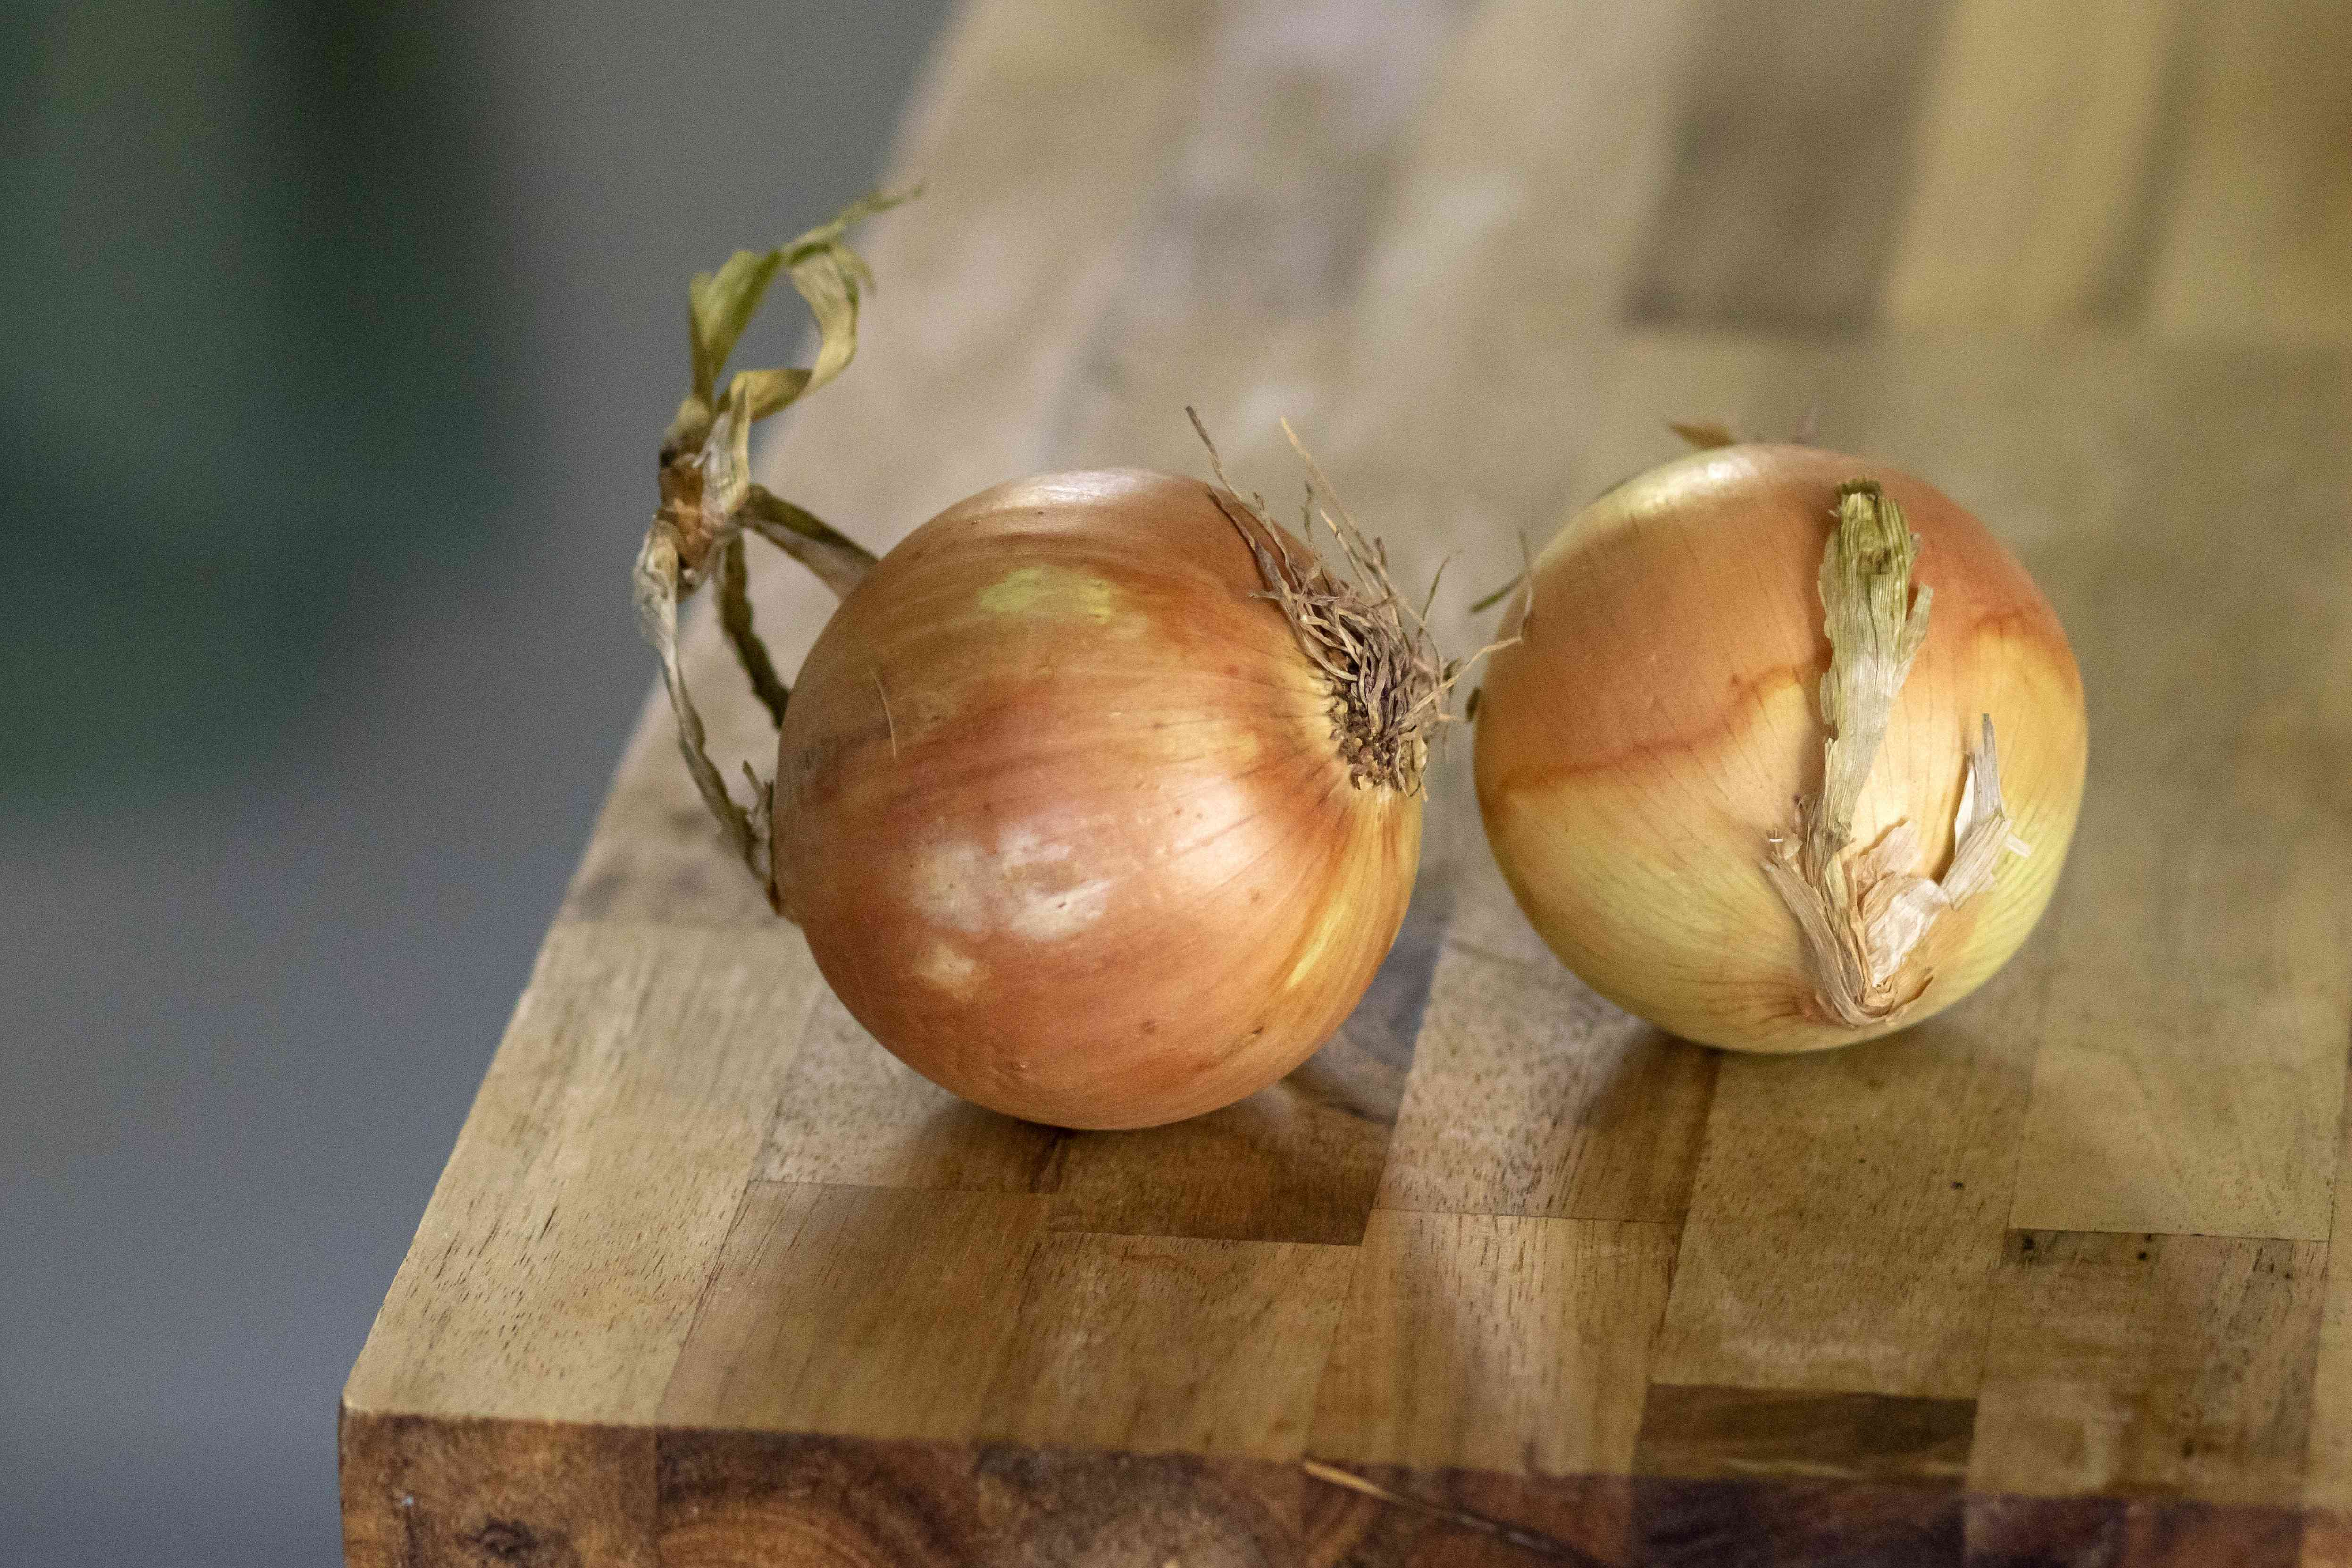 two onions on wooden table